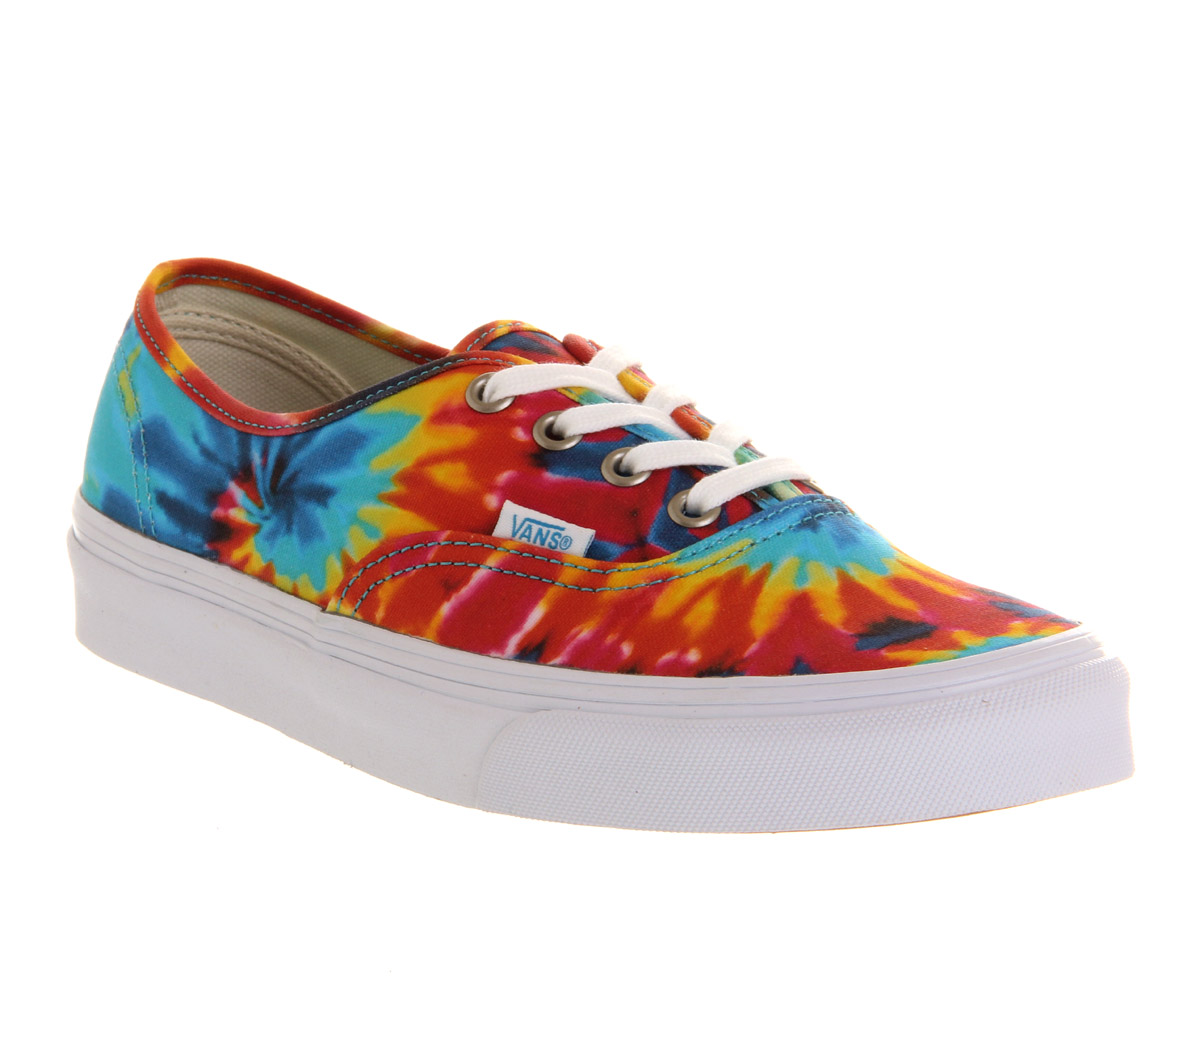 Tie Dye Shoes For Sale